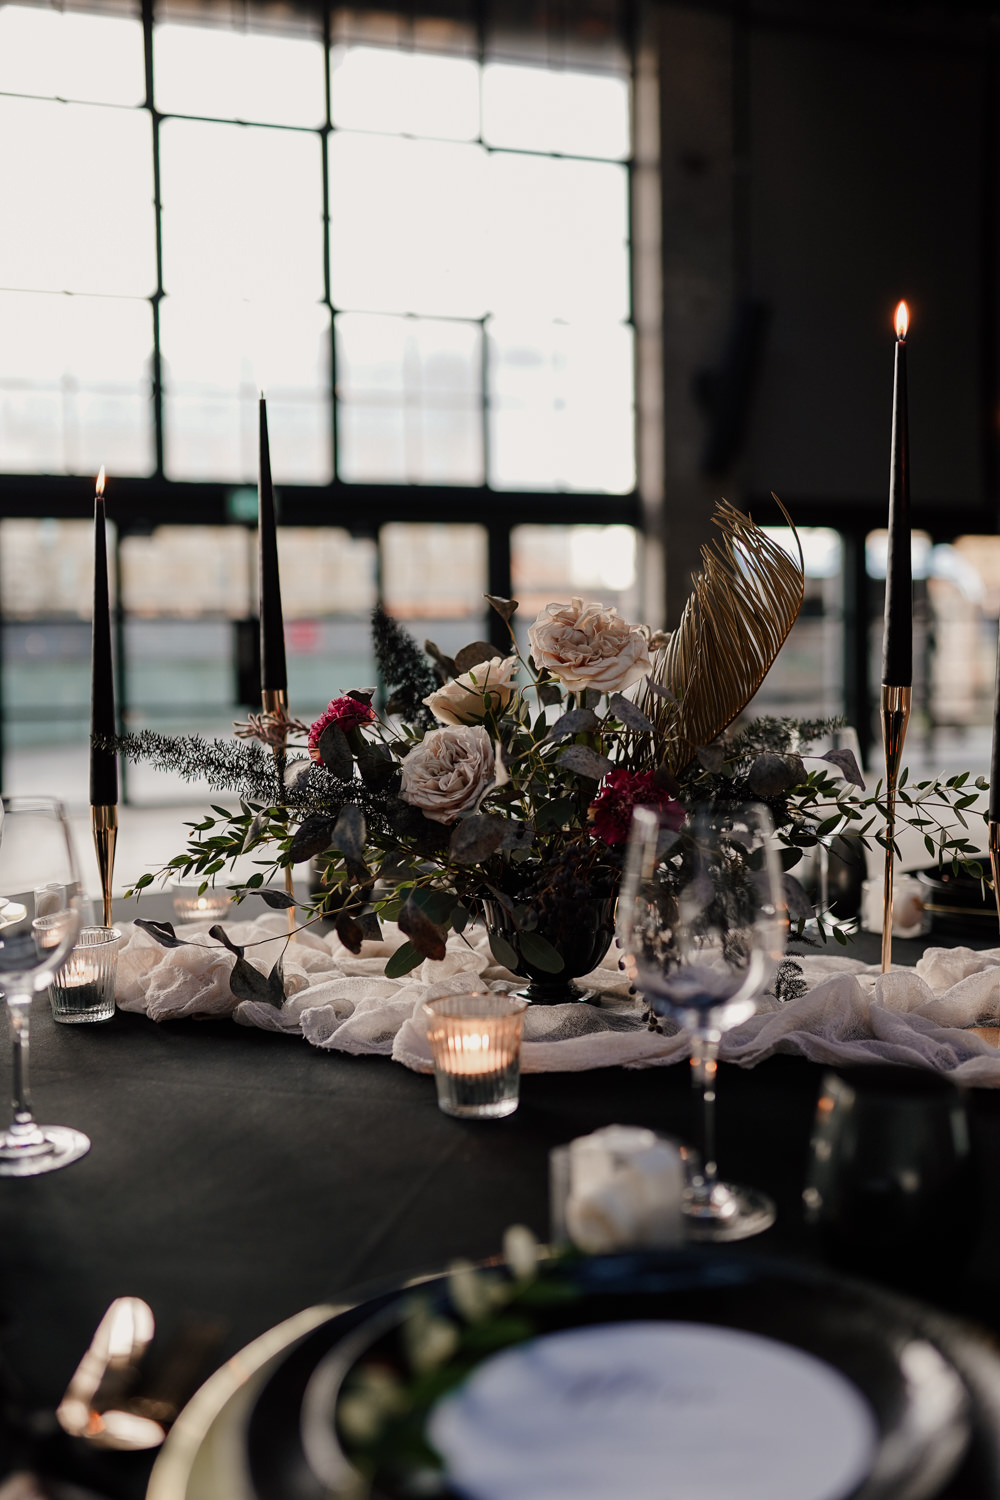 Pampas Grass Table Tablescape Decor Black Table Cloth Candles Flowers Industrial Wedding Ideas Sam Sparks Photography